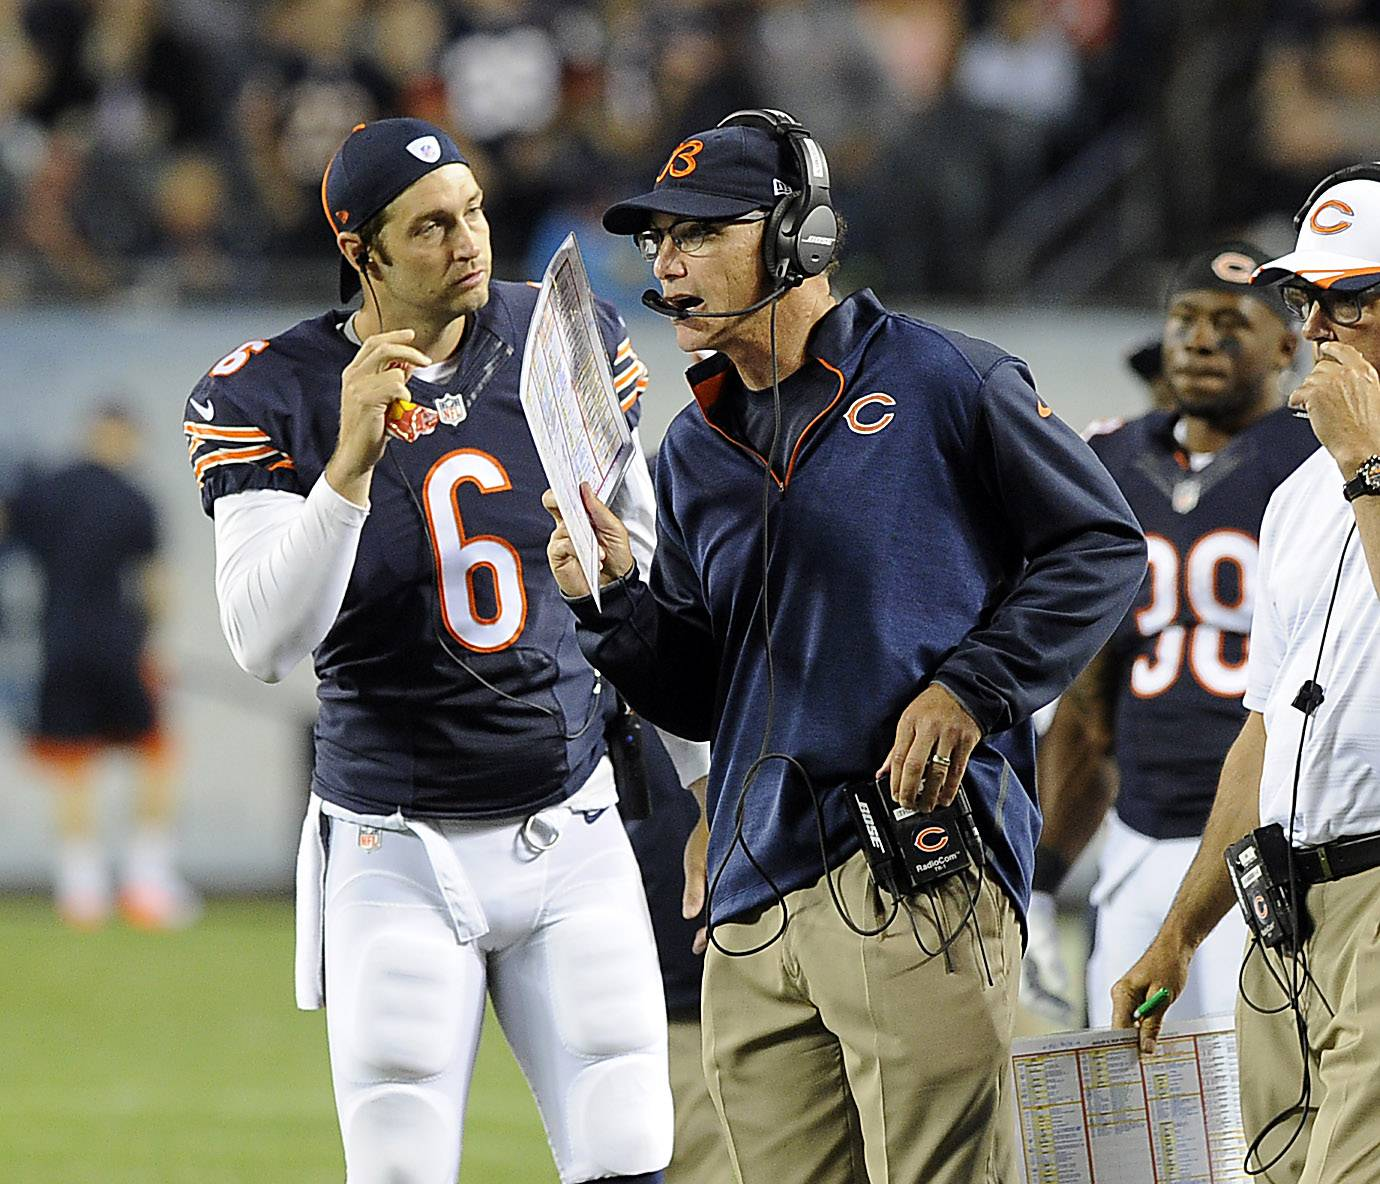 Chicago Bears coach Marc Trestman and quarterback Jay Cutler in the third quarter.